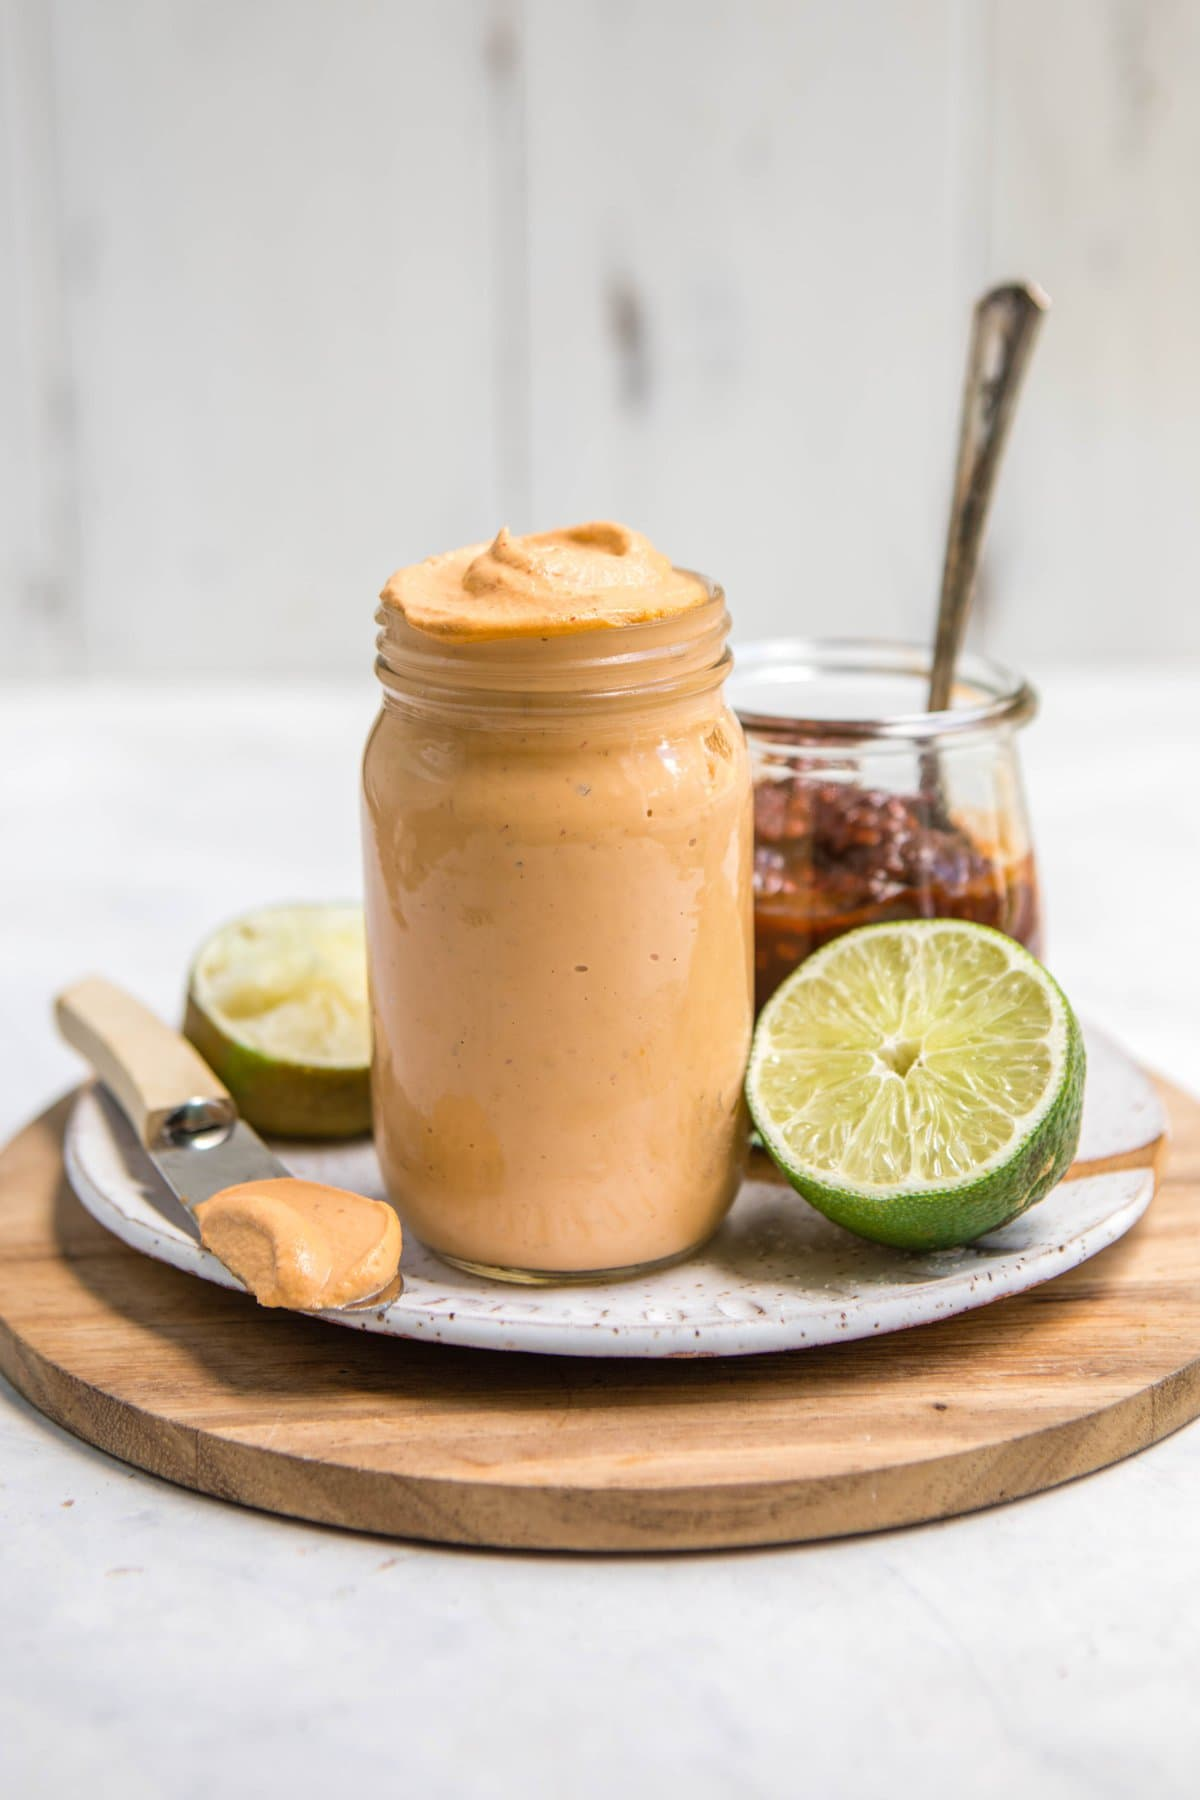 Vegan Chipotle Mayo Recipe 5 Ingredients From My Bowl